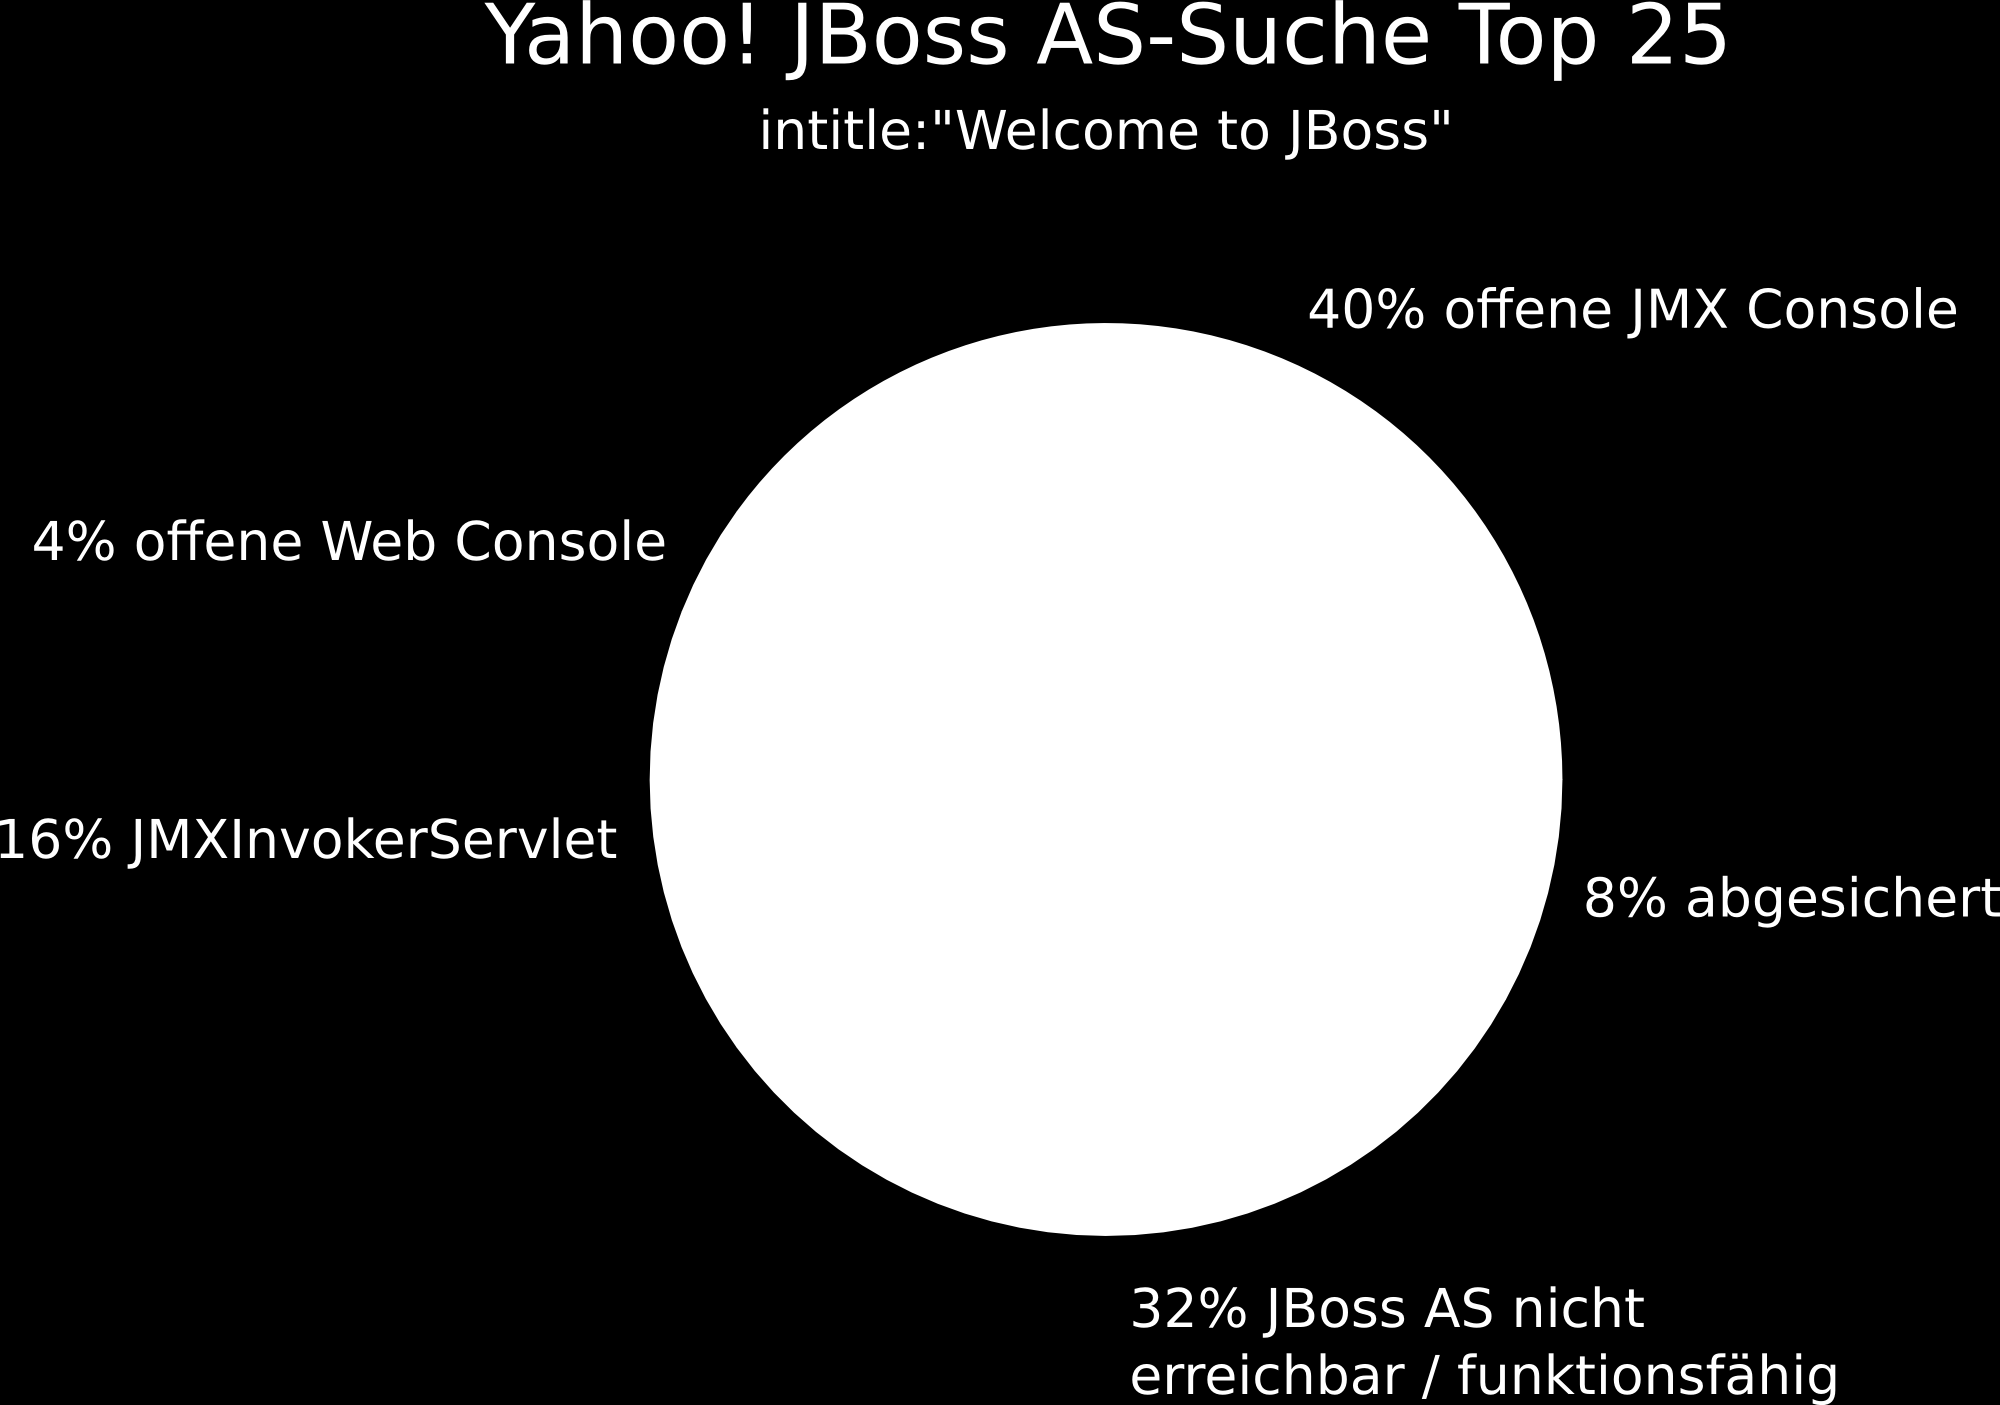 "intitle:""welcome to JBoss"" lieferte 1.150 Treffer."